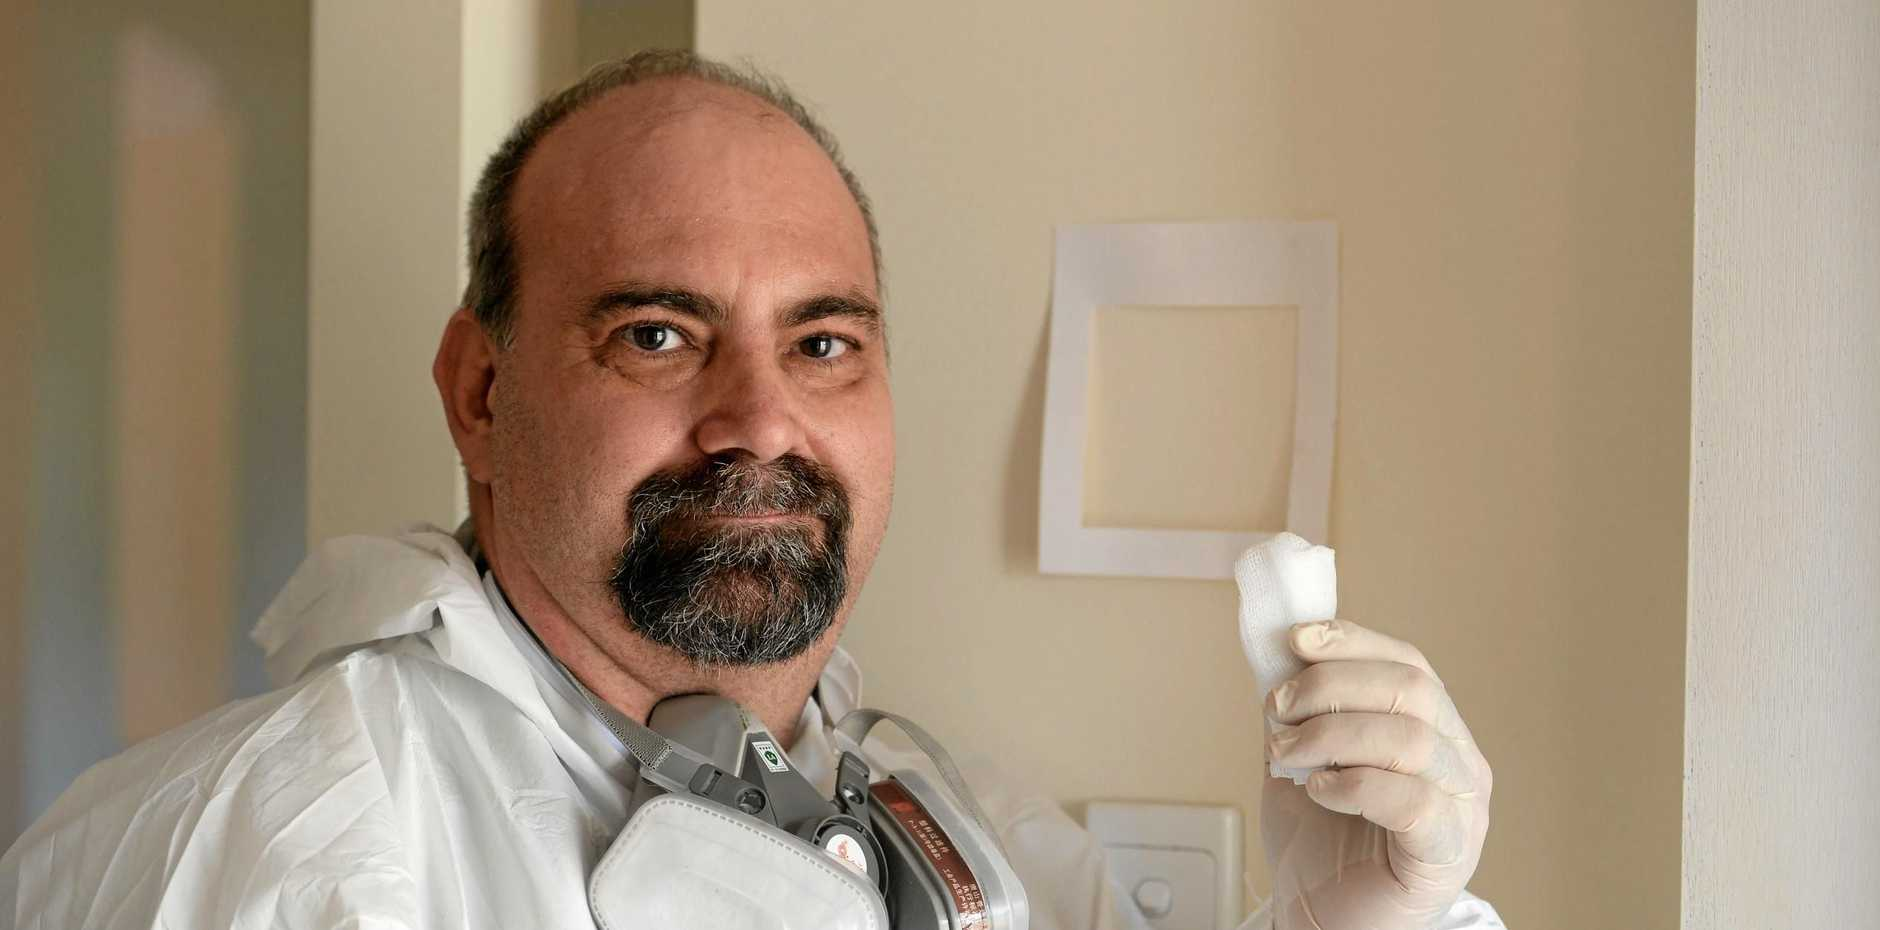 Mark Joubert of Keenland Services works as a residual meth tester for Meth Screen